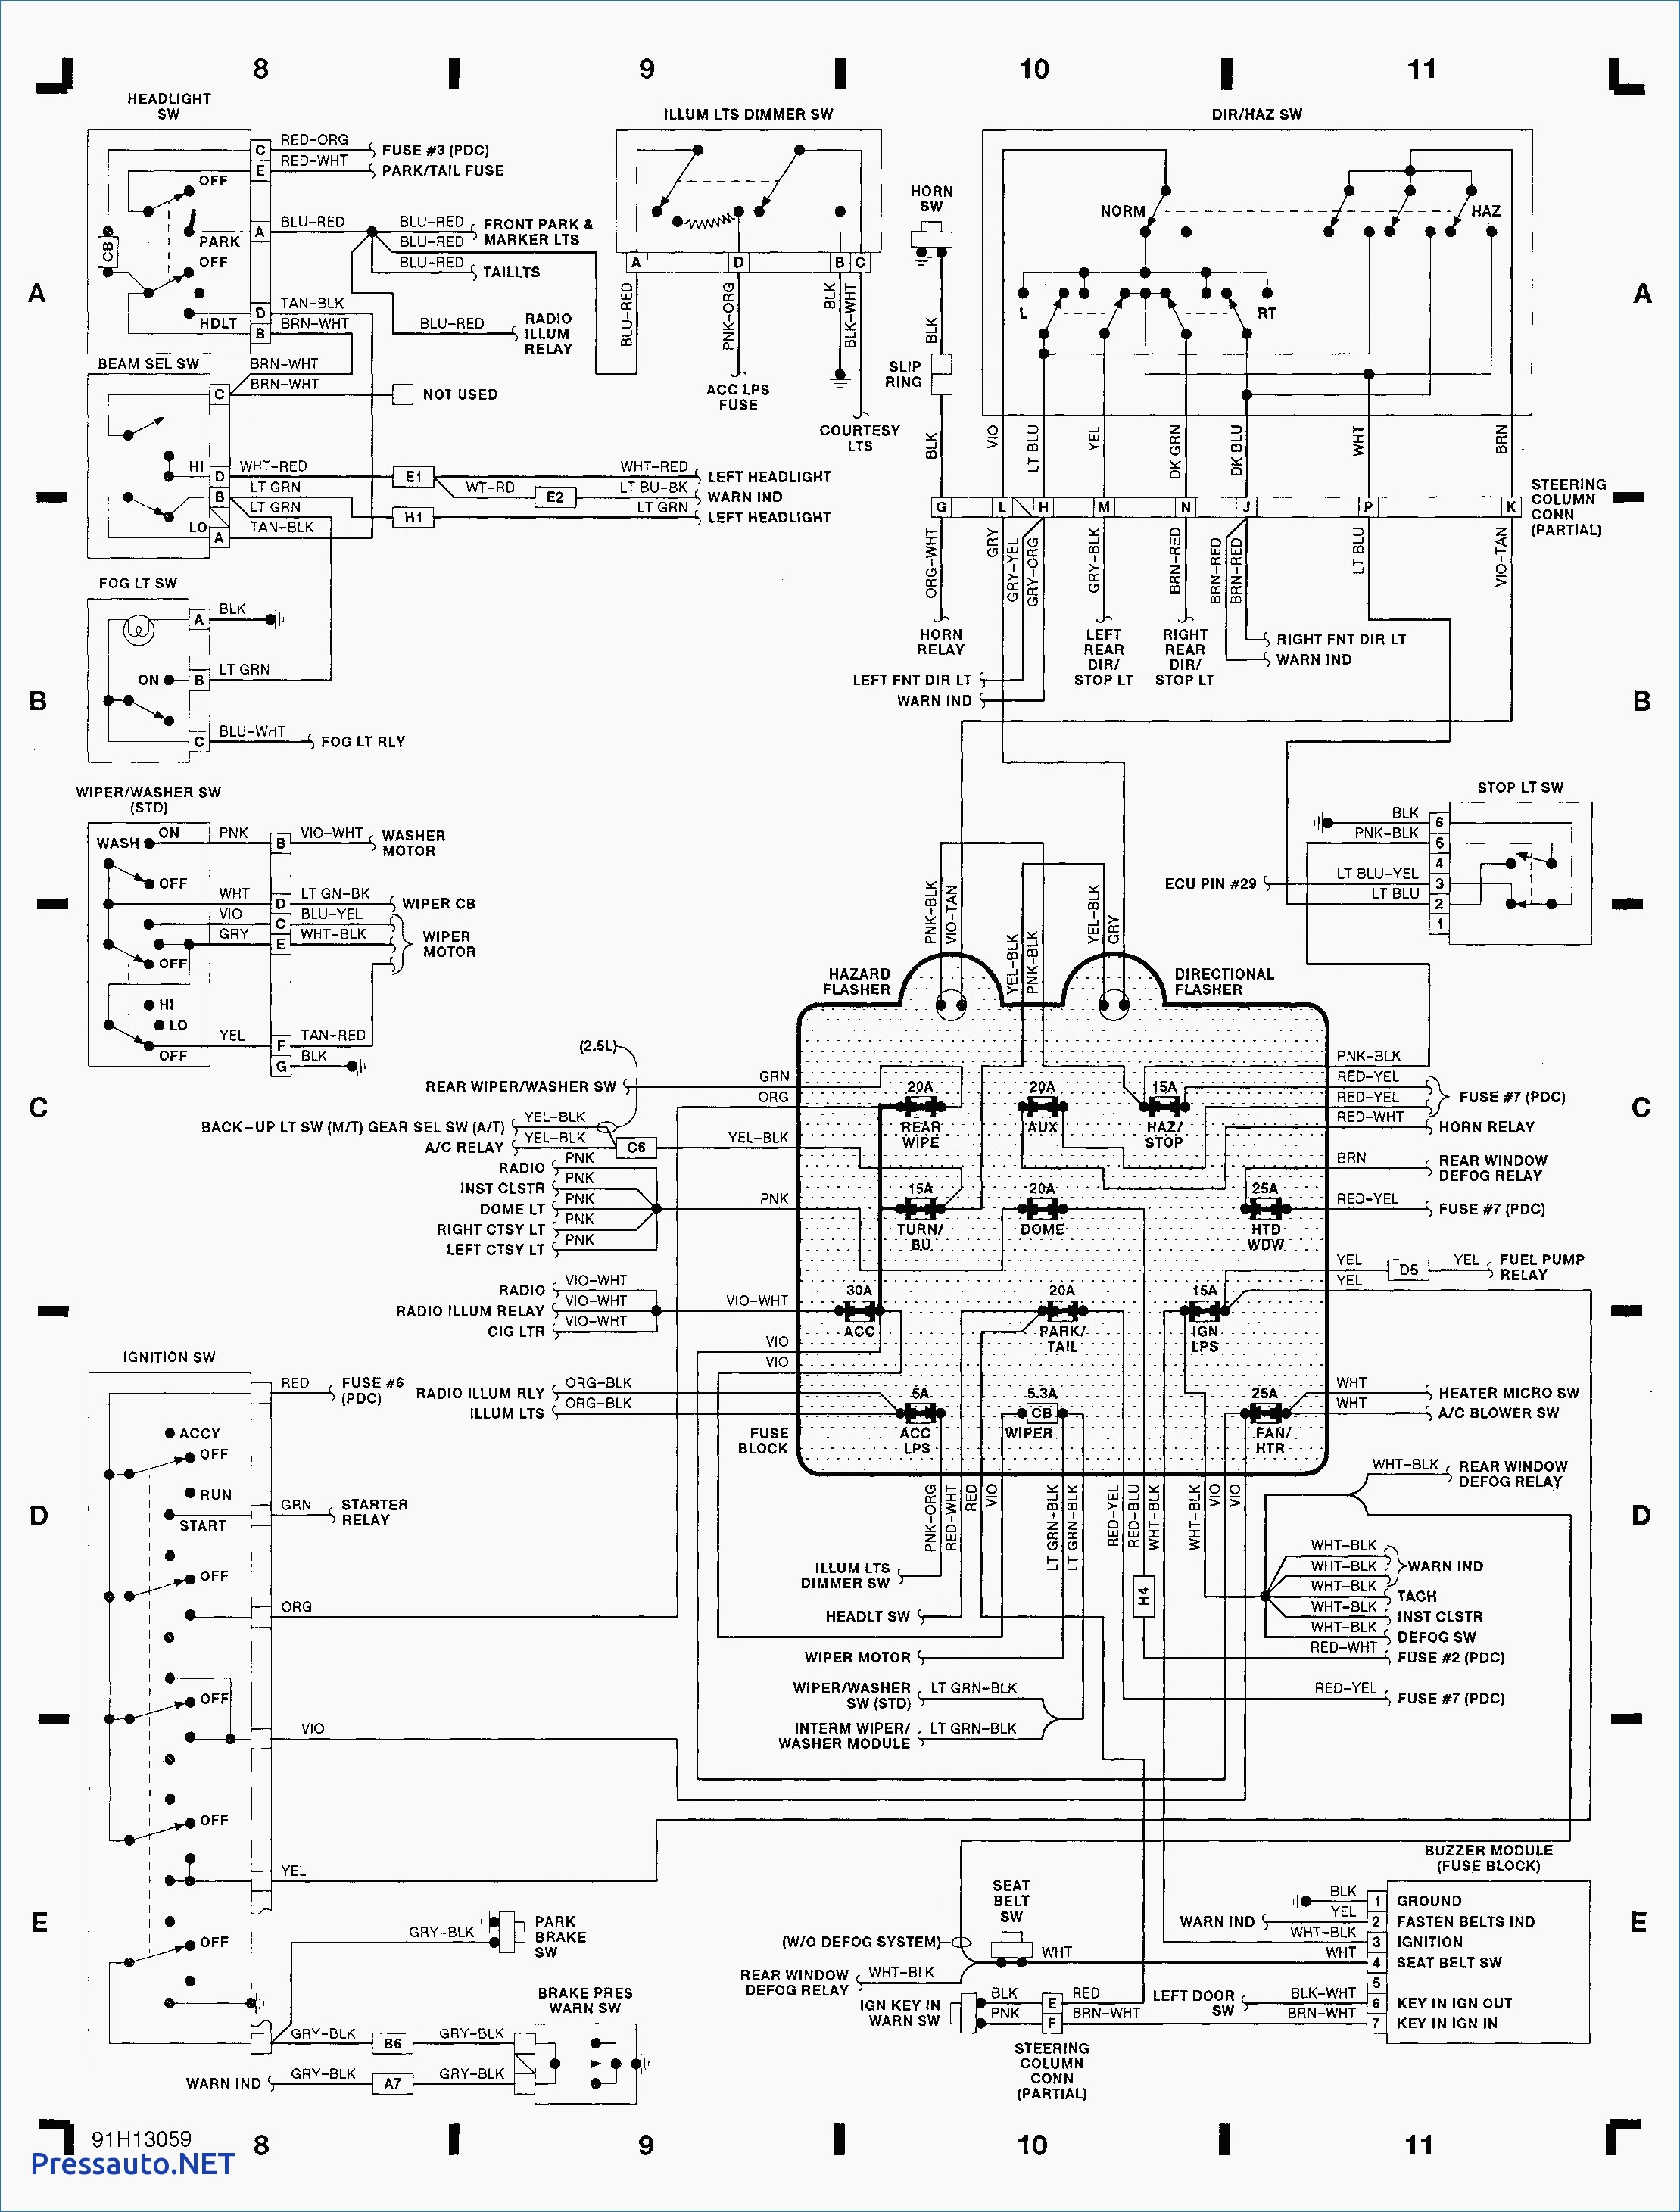 Fuse Box Diagram On Headlight Wiring Diagram For 2007 Jeep